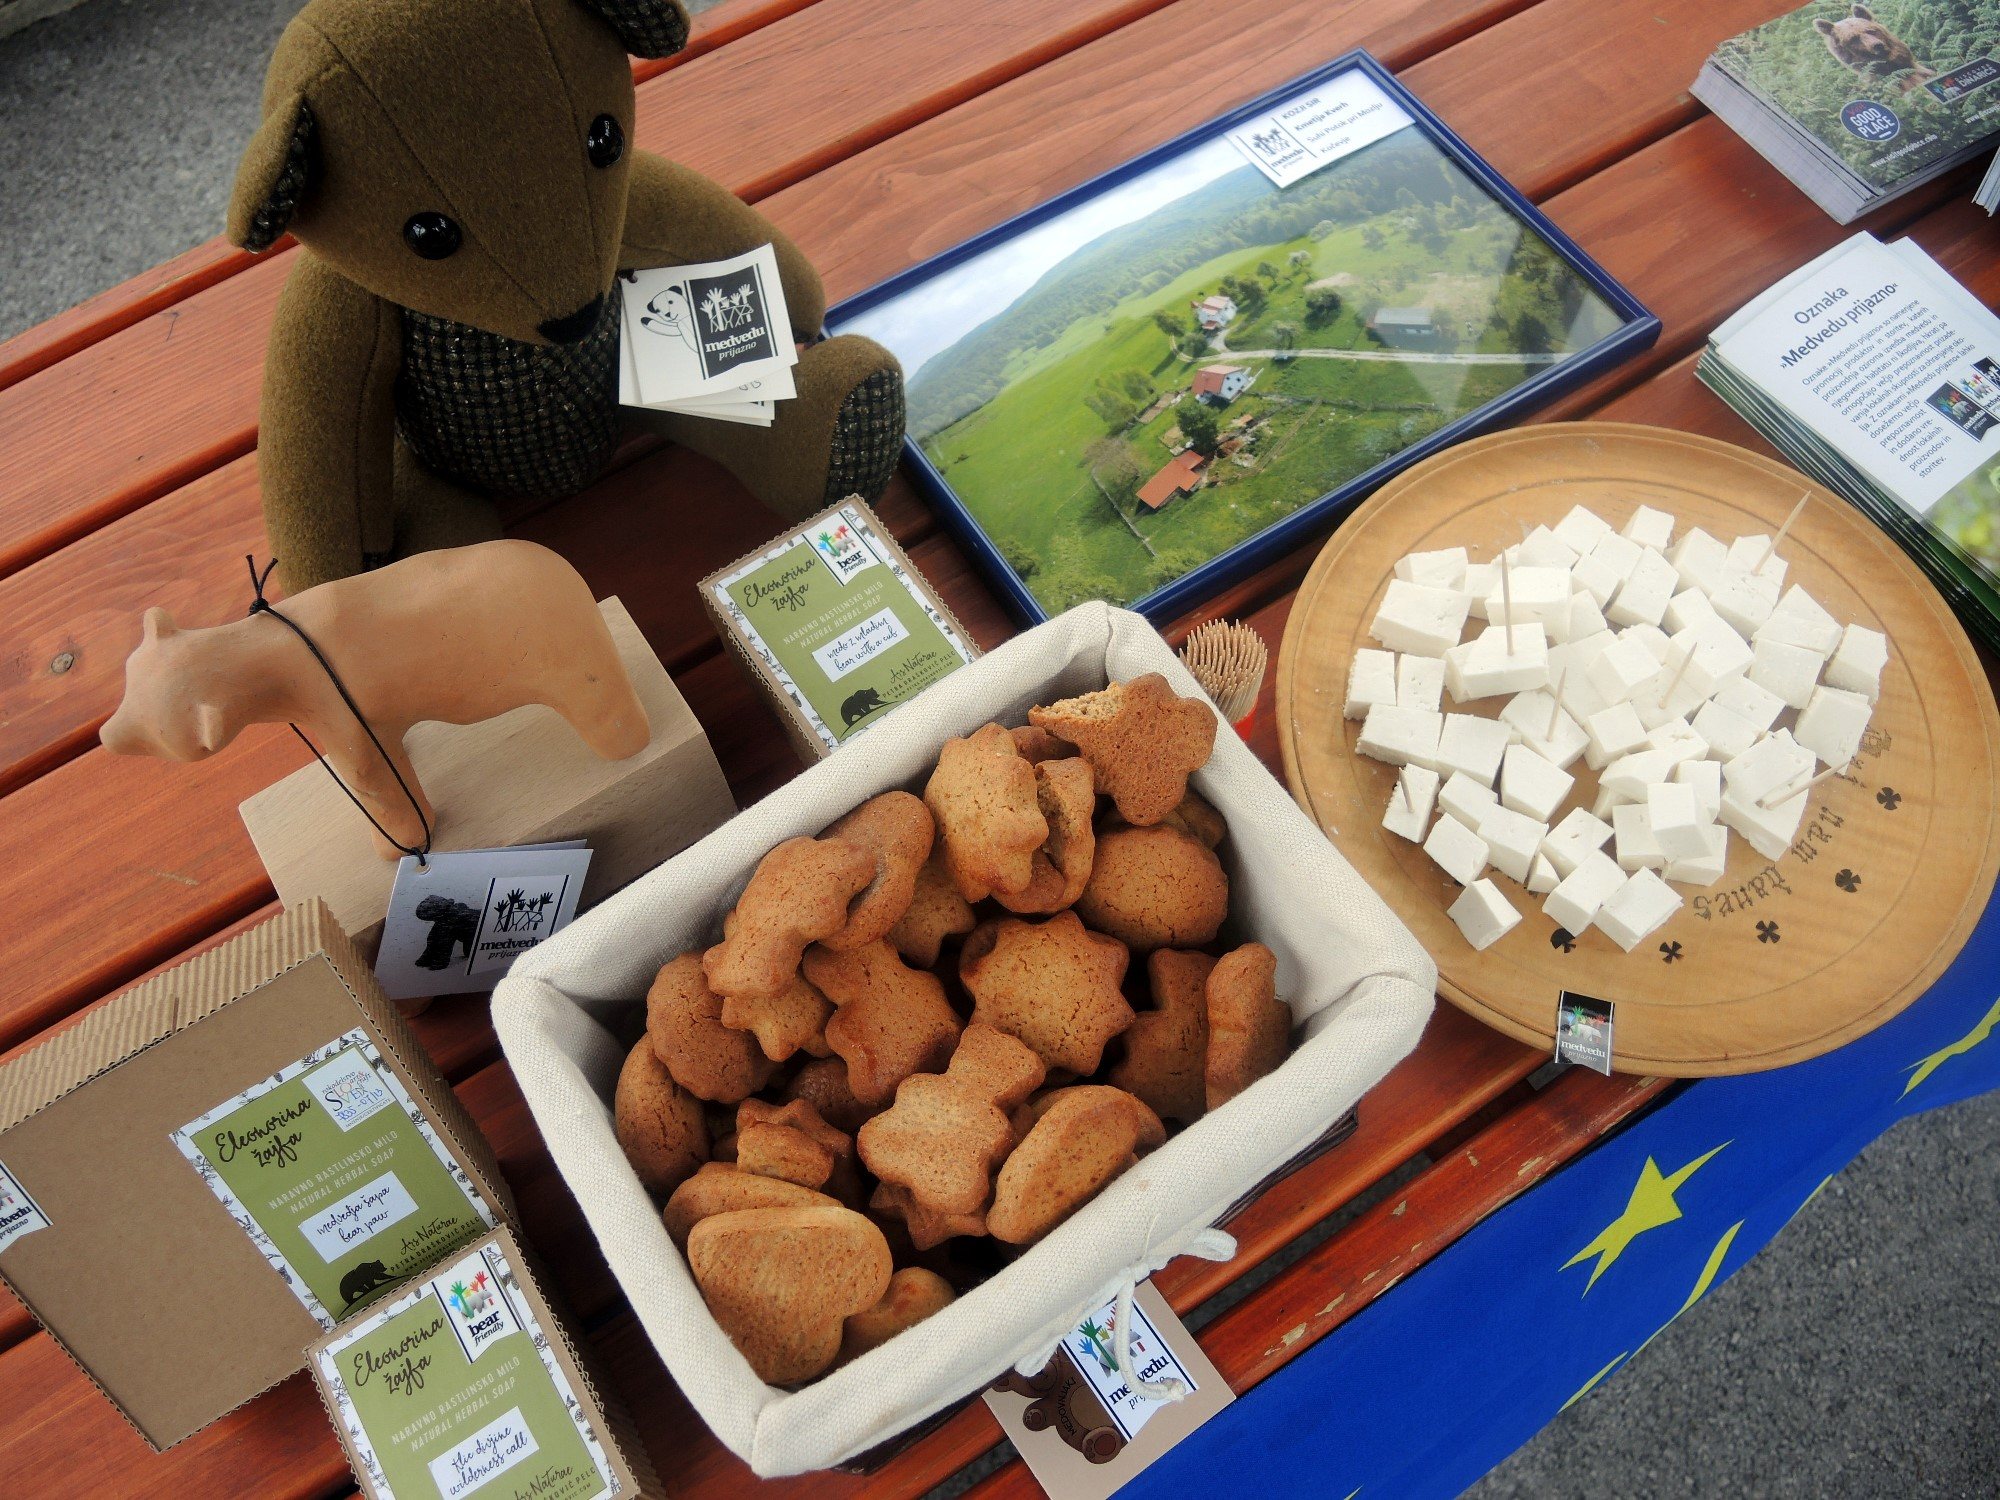 Bear-friendly products presented in Pivka